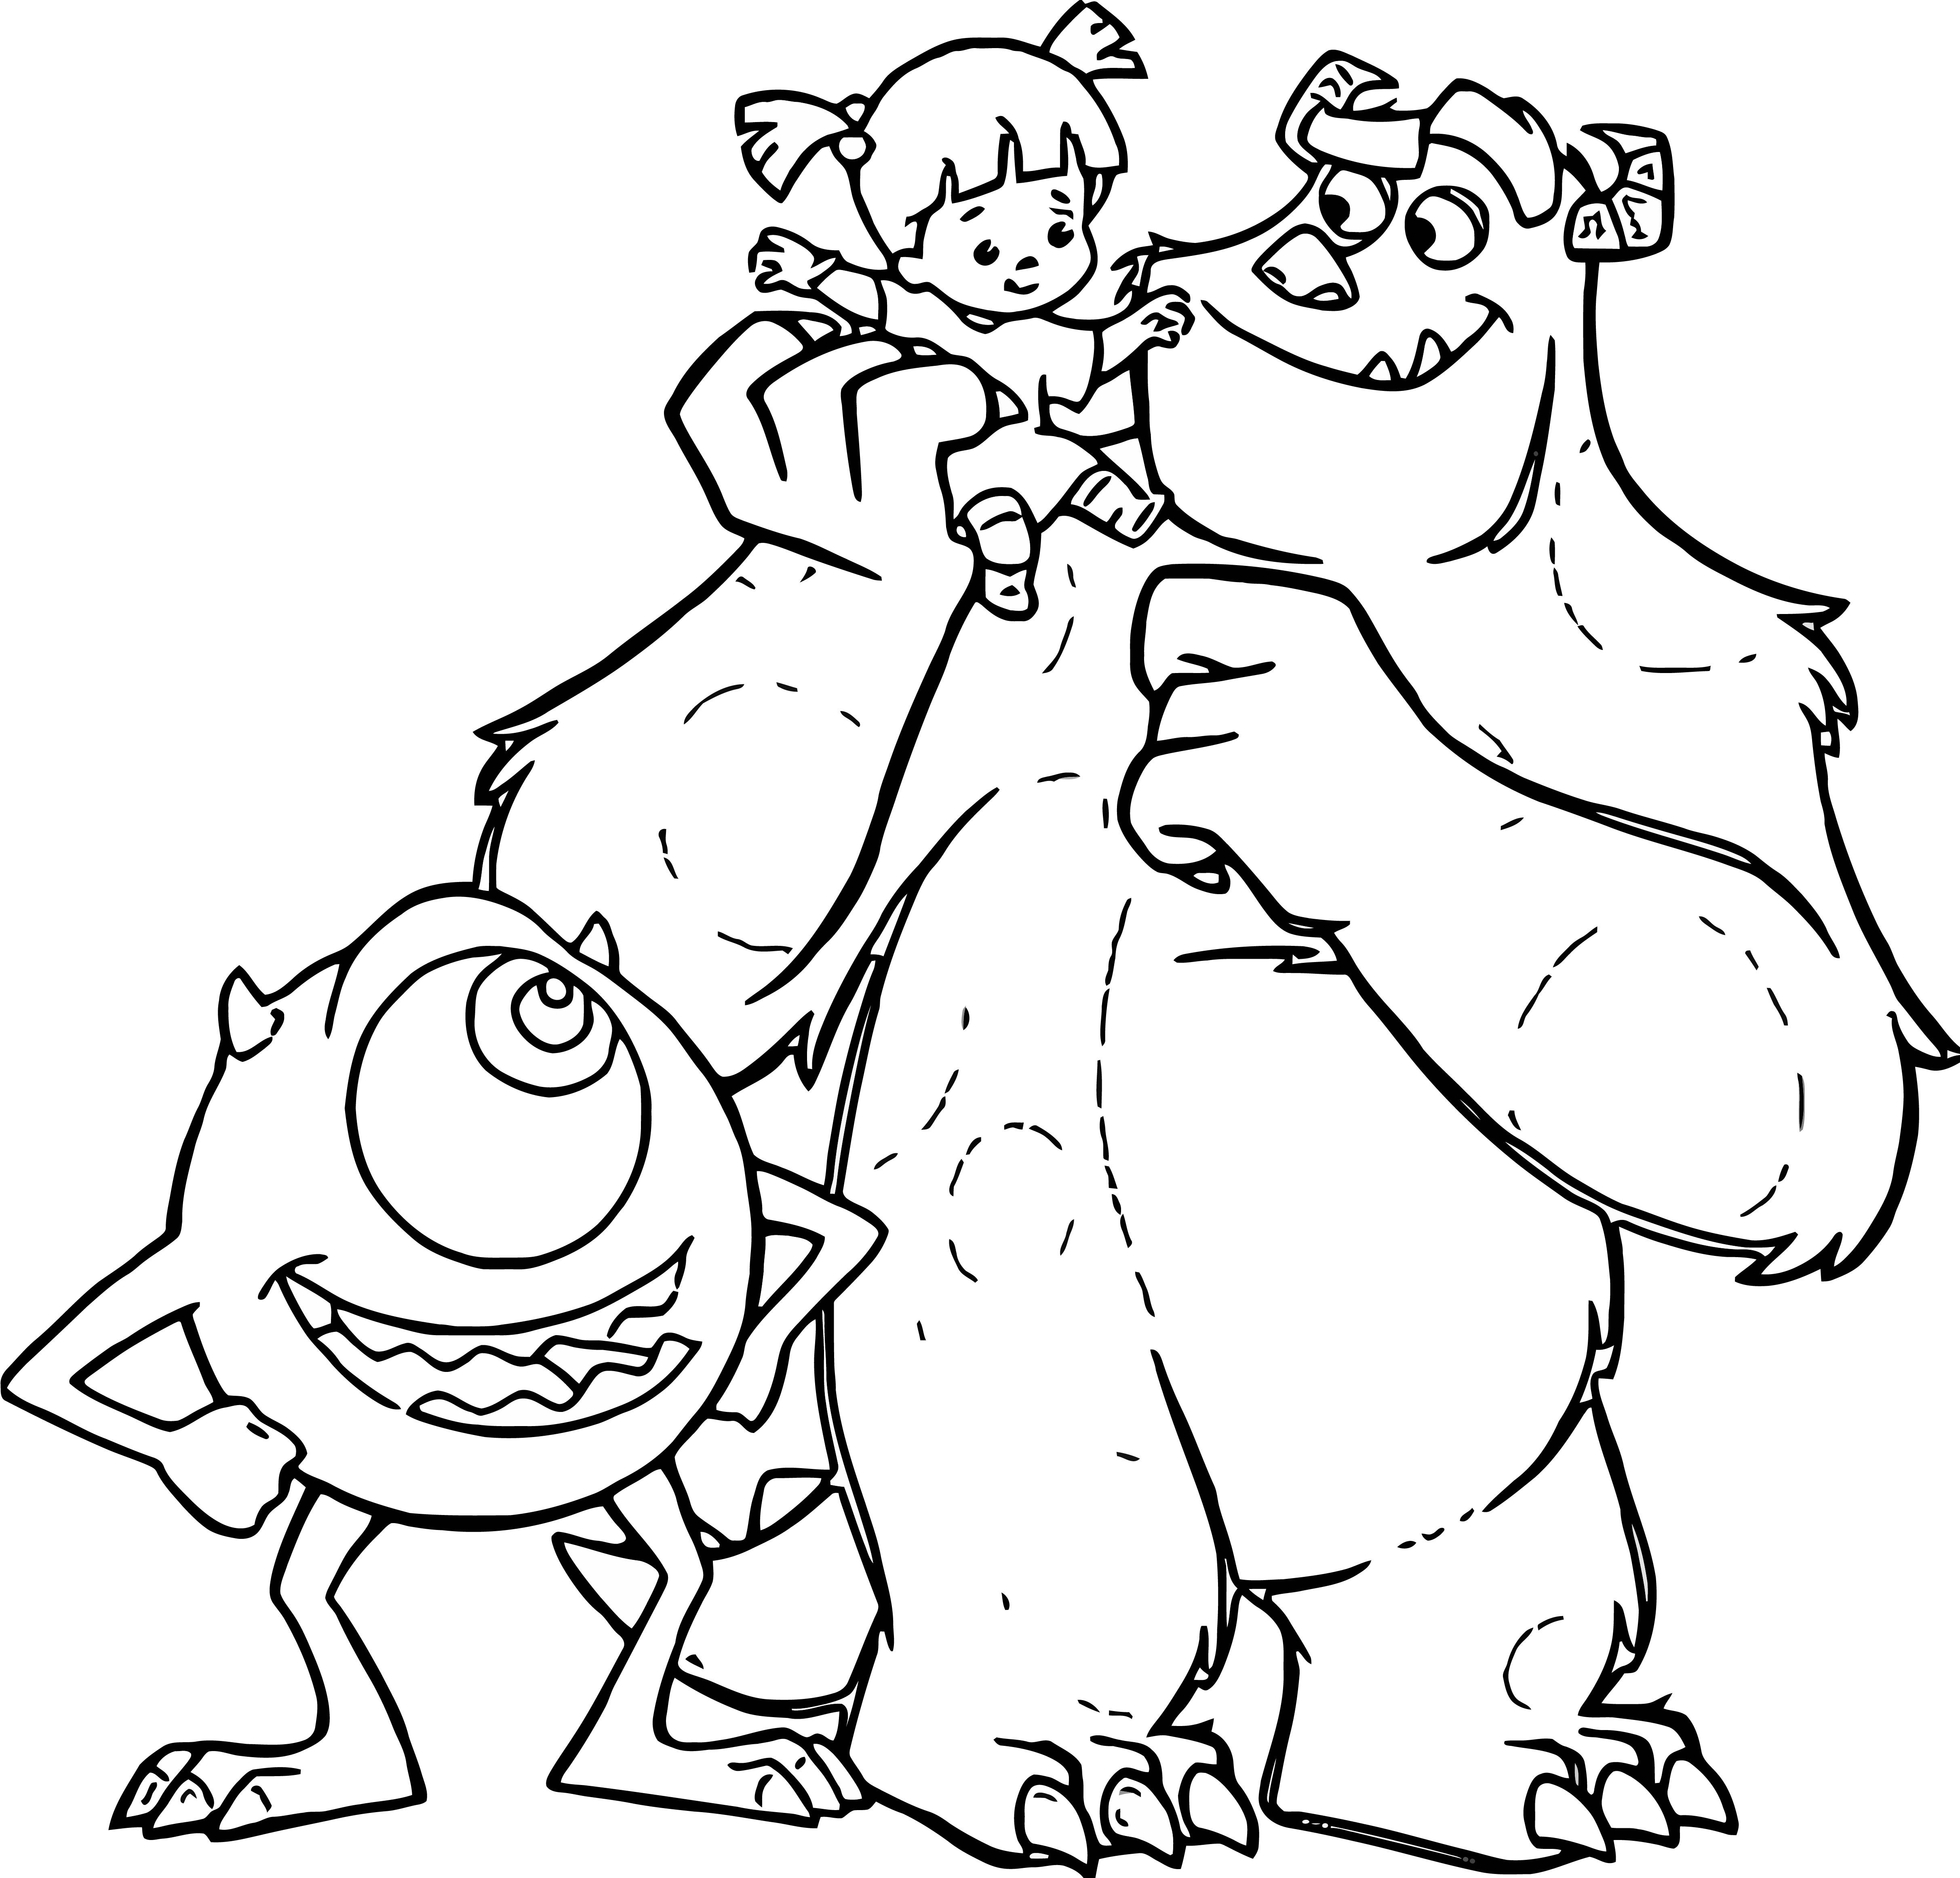 Monster 3 Coloring Pages